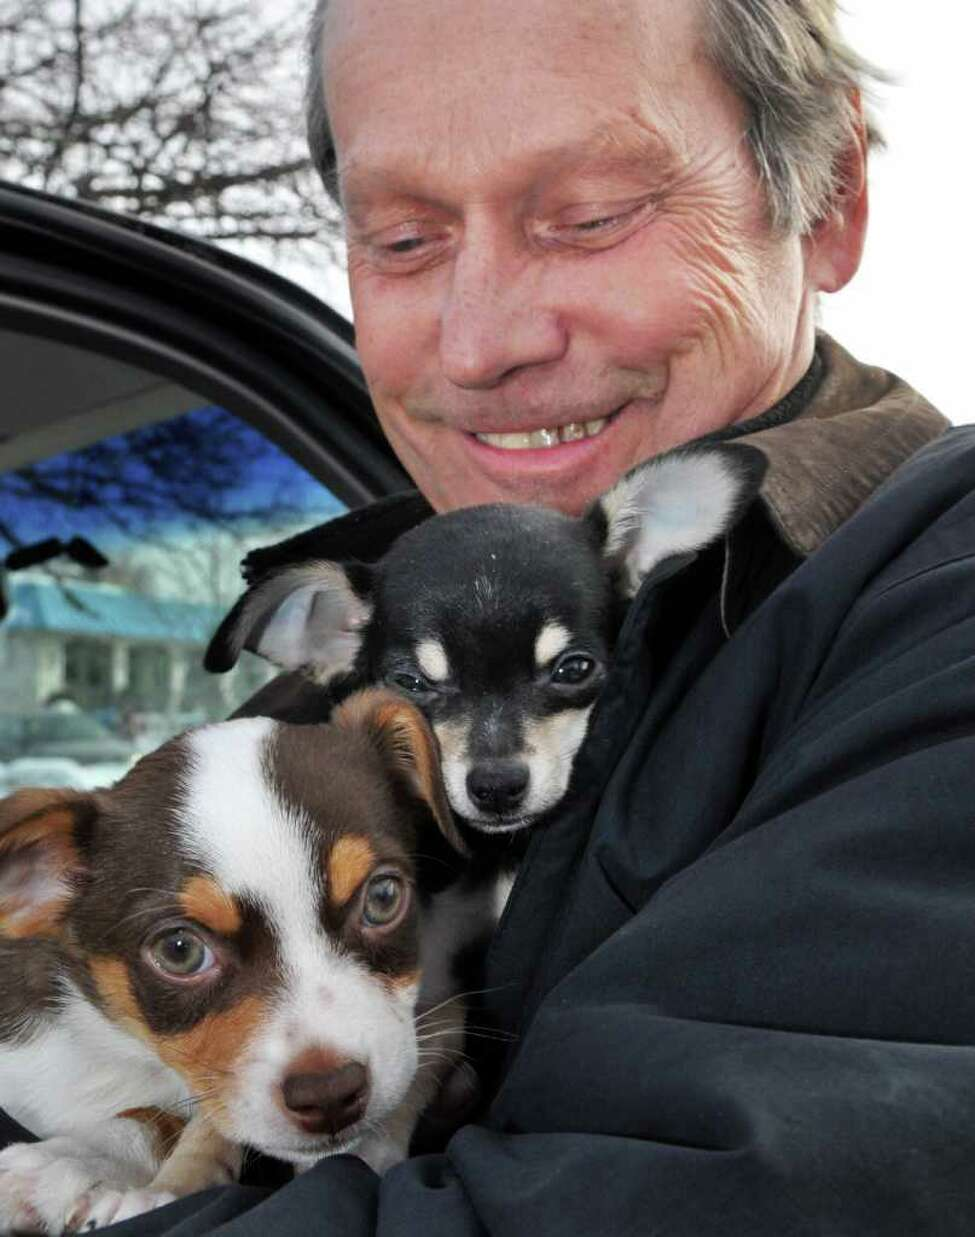 Fred Baye, who was burned out of his East Schodack home the day after Christmas, with new dogs